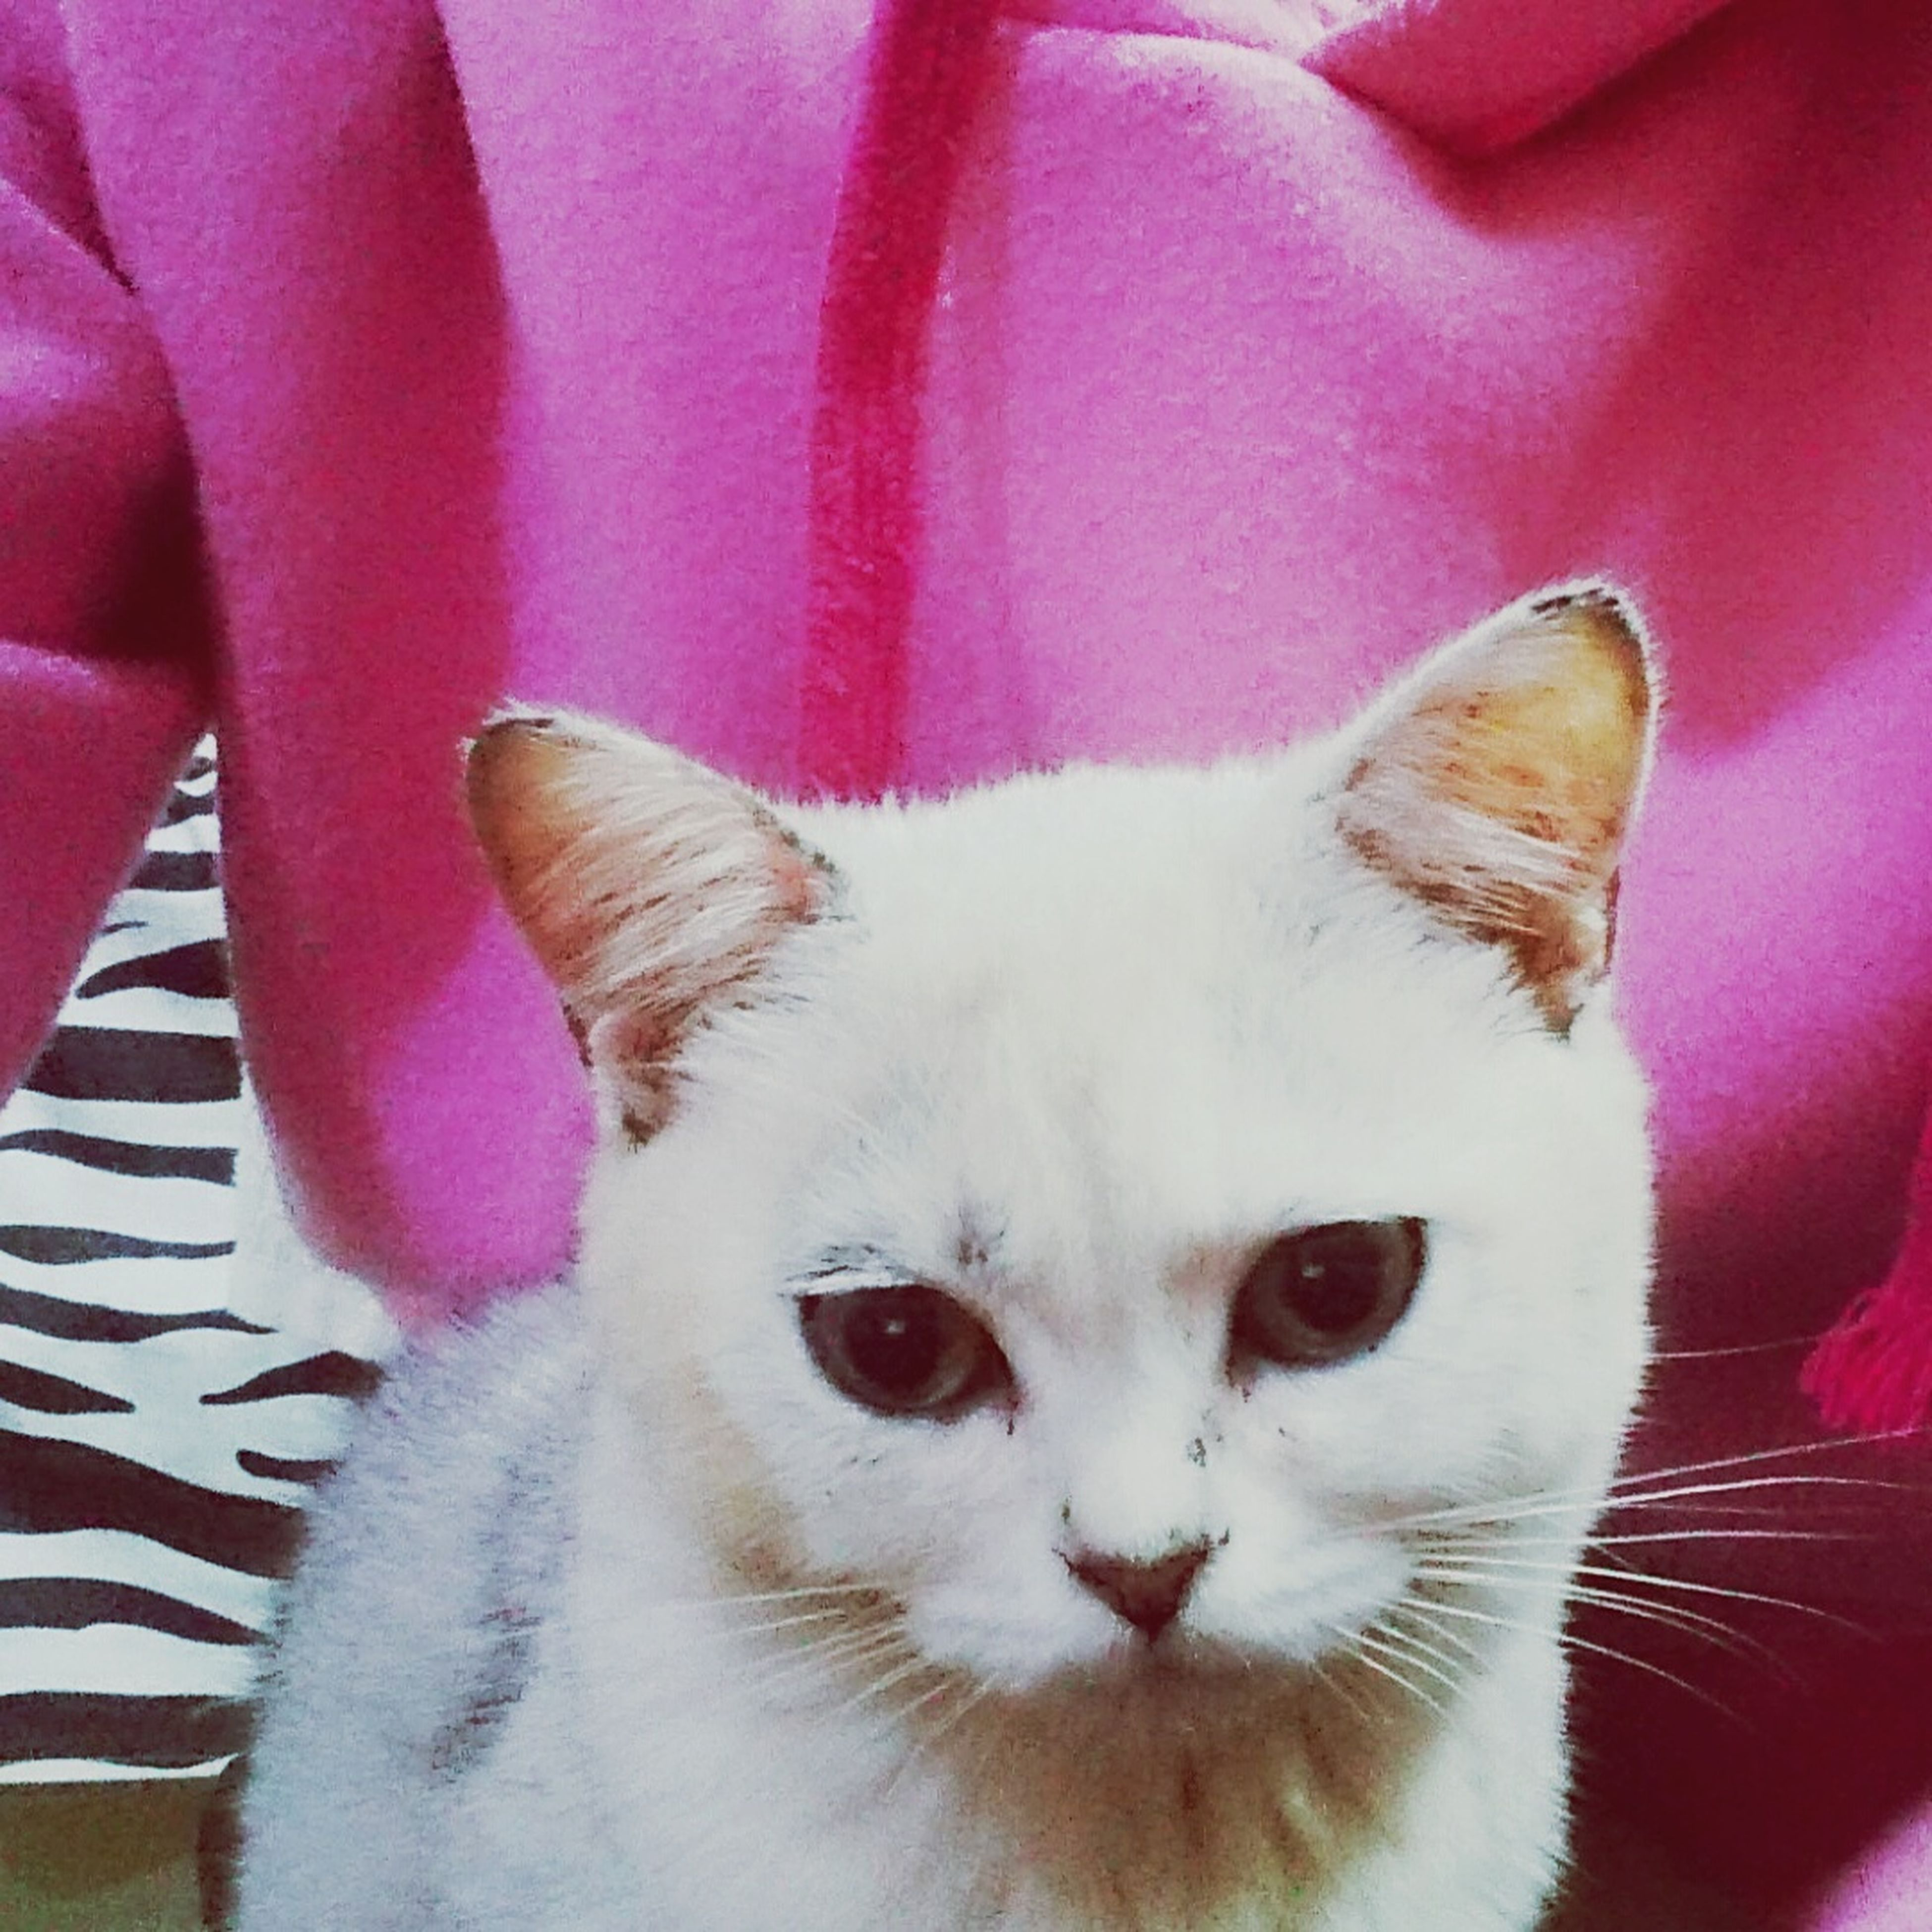 pets, domestic animals, mammal, domestic cat, one animal, animal themes, pink color, feline, portrait, close-up, no people, indoors, day